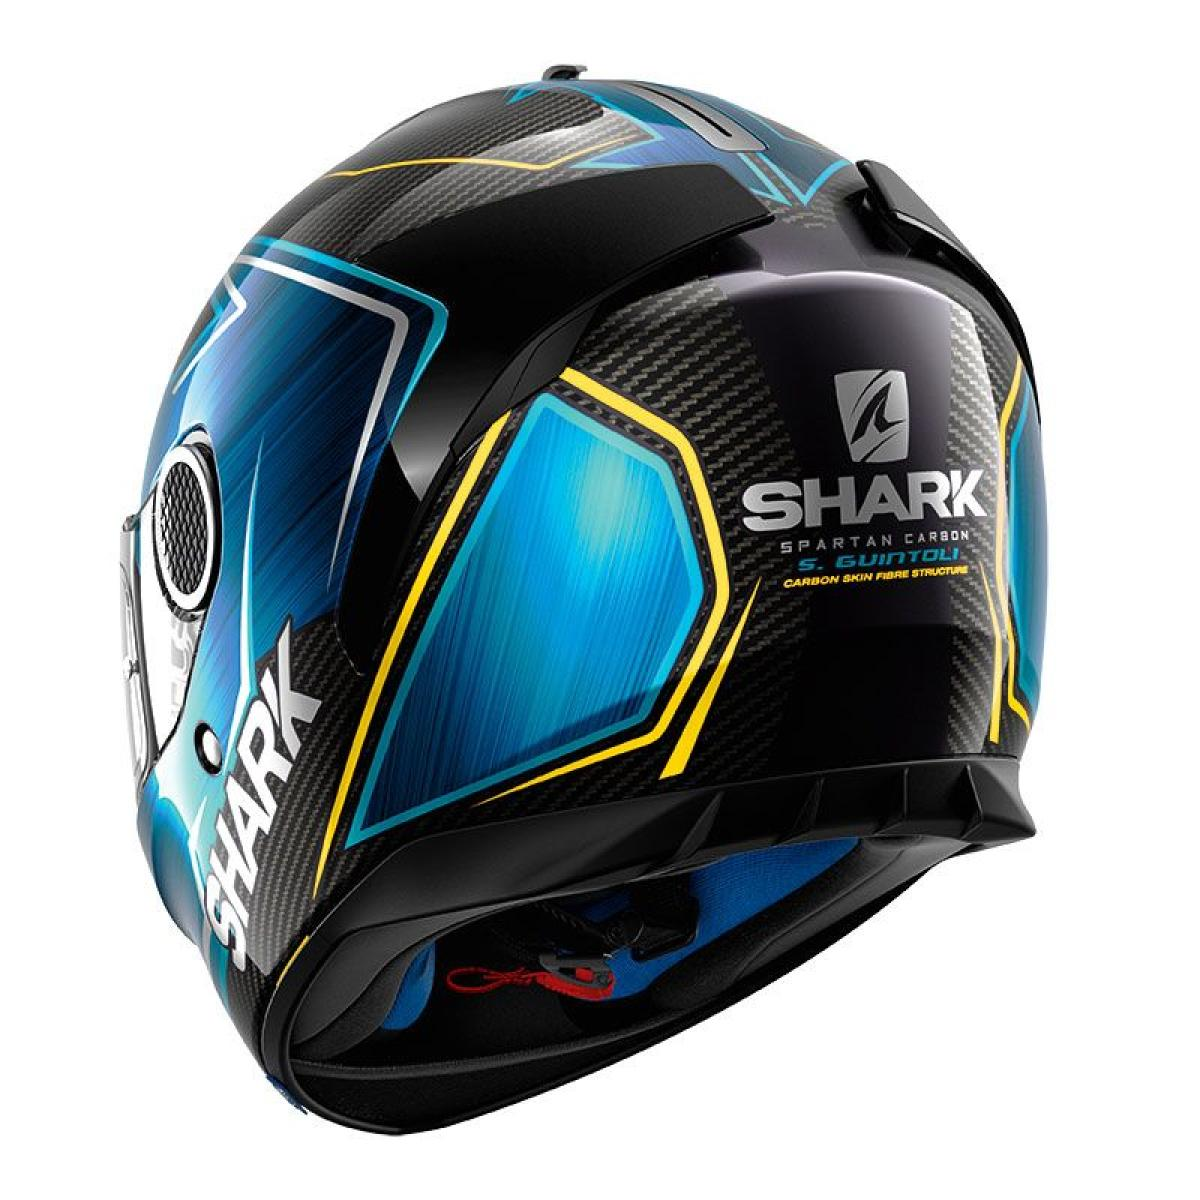 casque moto shark spartan carbon replica guintoli bleu 2018. Black Bedroom Furniture Sets. Home Design Ideas